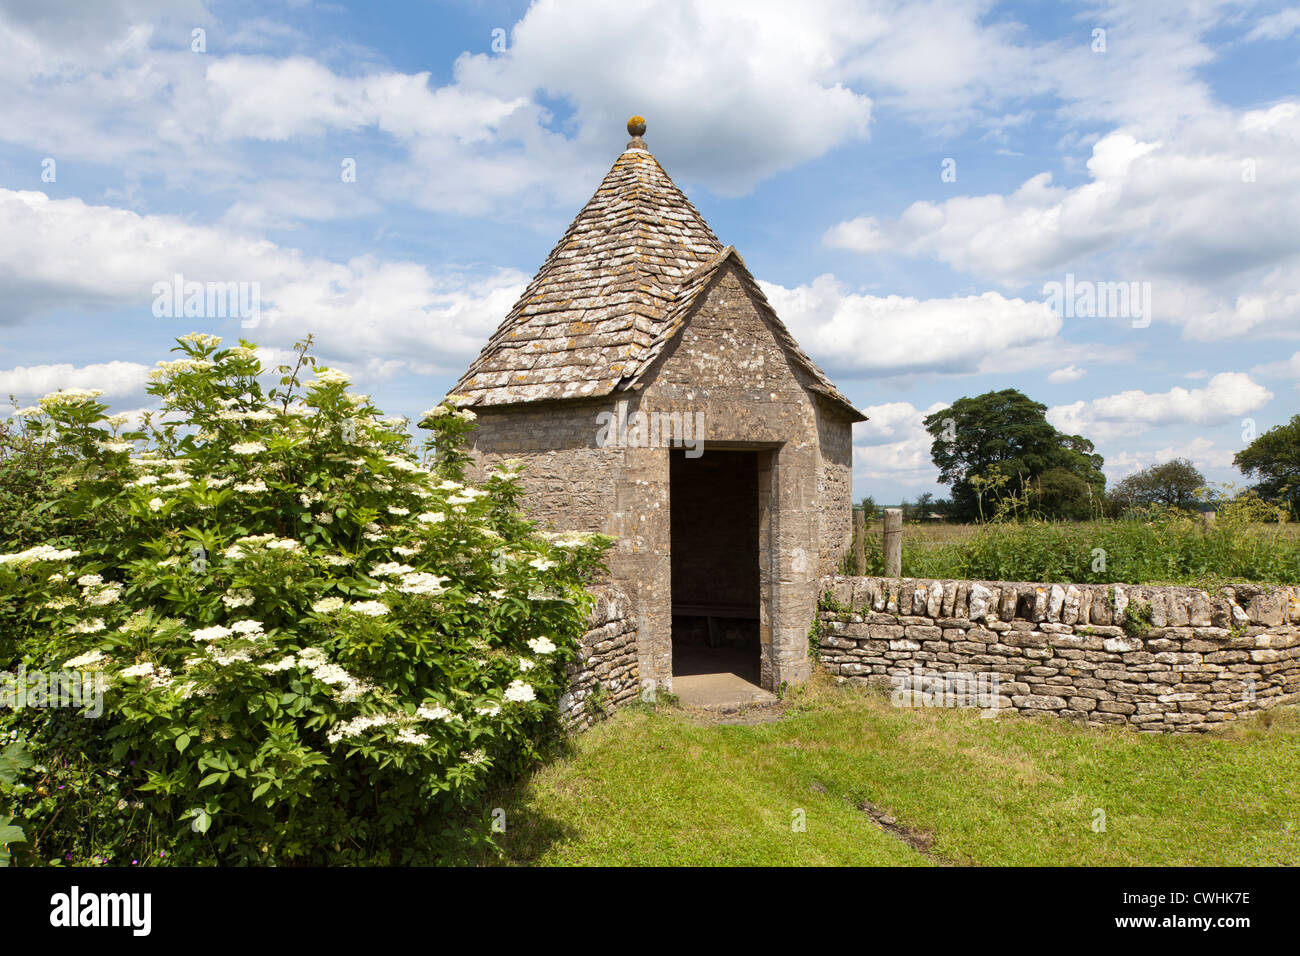 A delightfully quirky octagonal bus shelter built of Cotswold stone in the Cotswold village of Farmington, Gloucestershire, - Stock Image